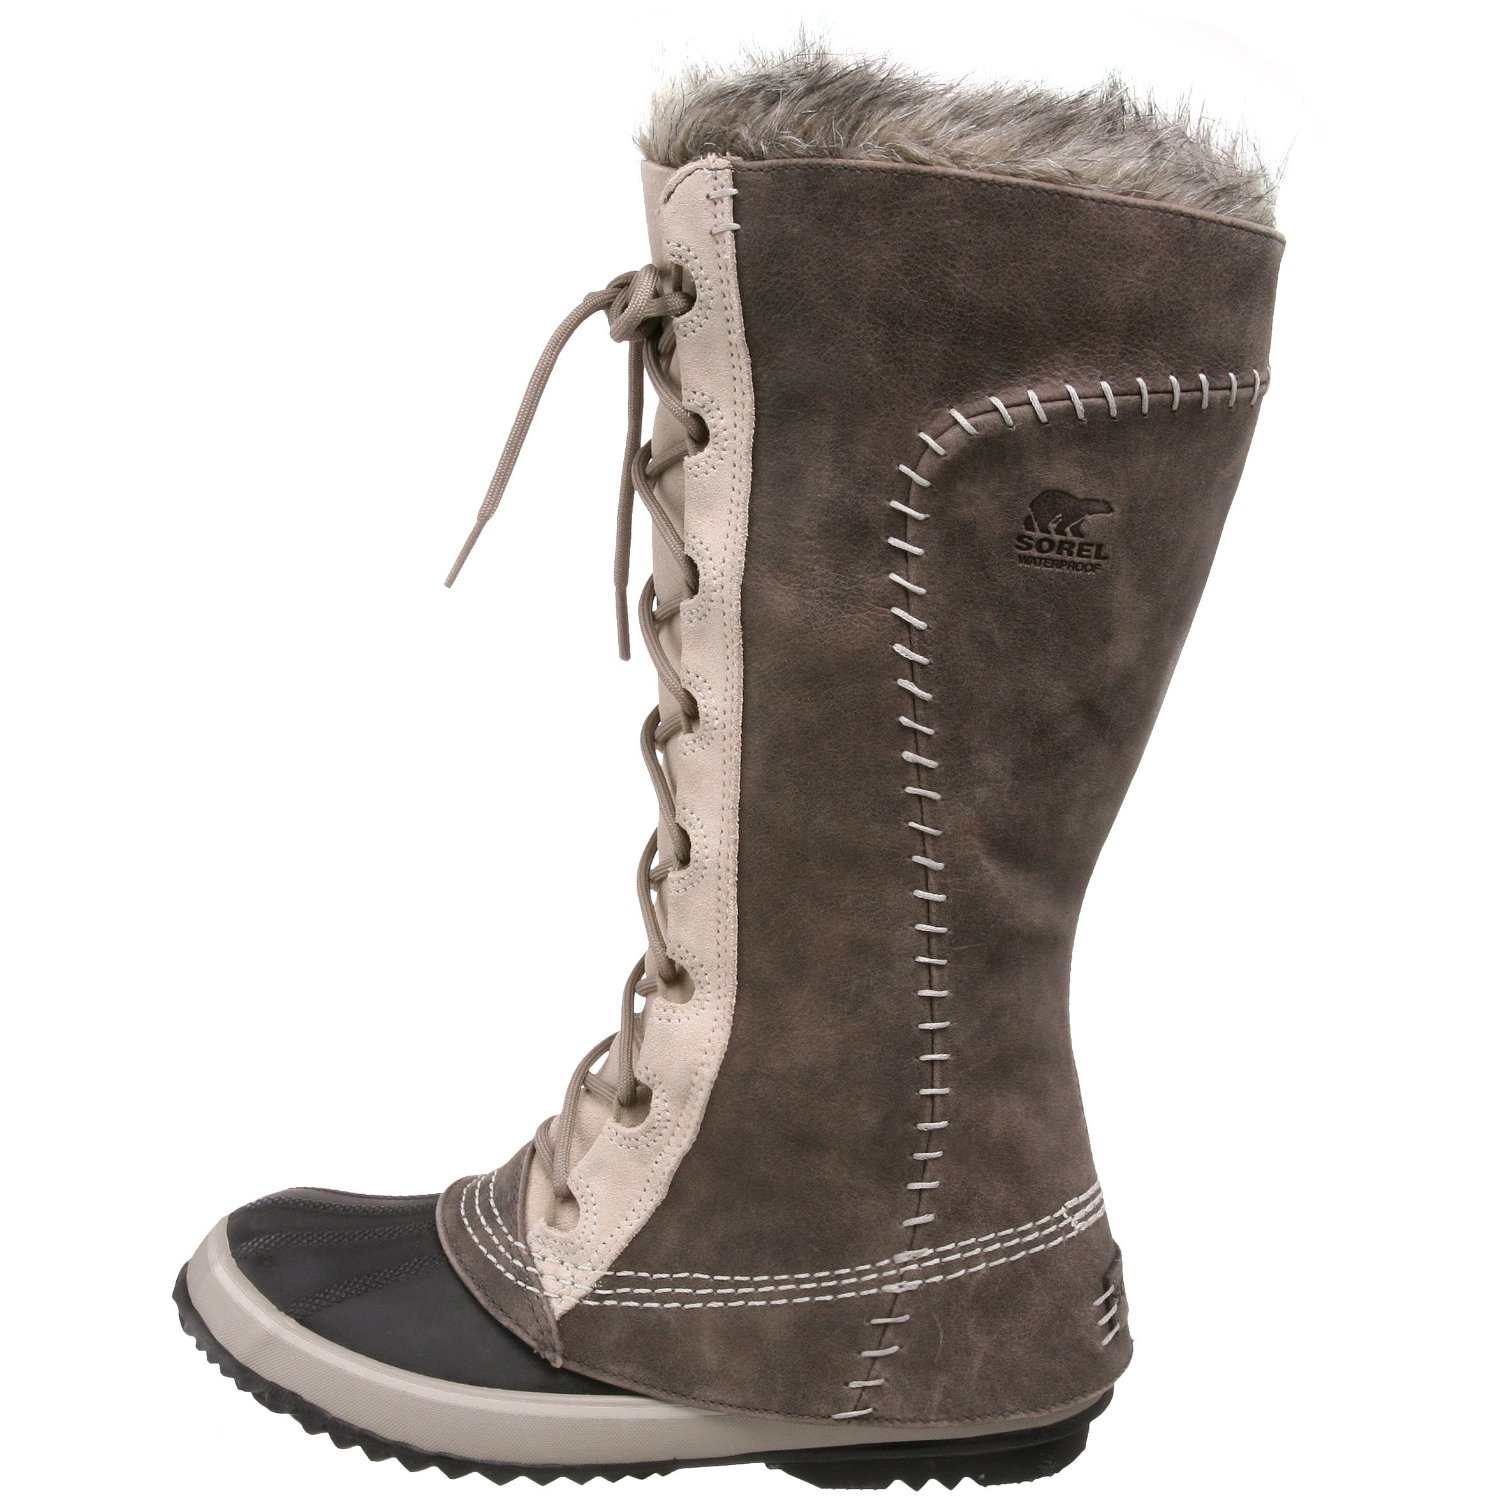 Brilliant  Waterproof  We Review 5 Of The Best Womens Winter Boots For 2017